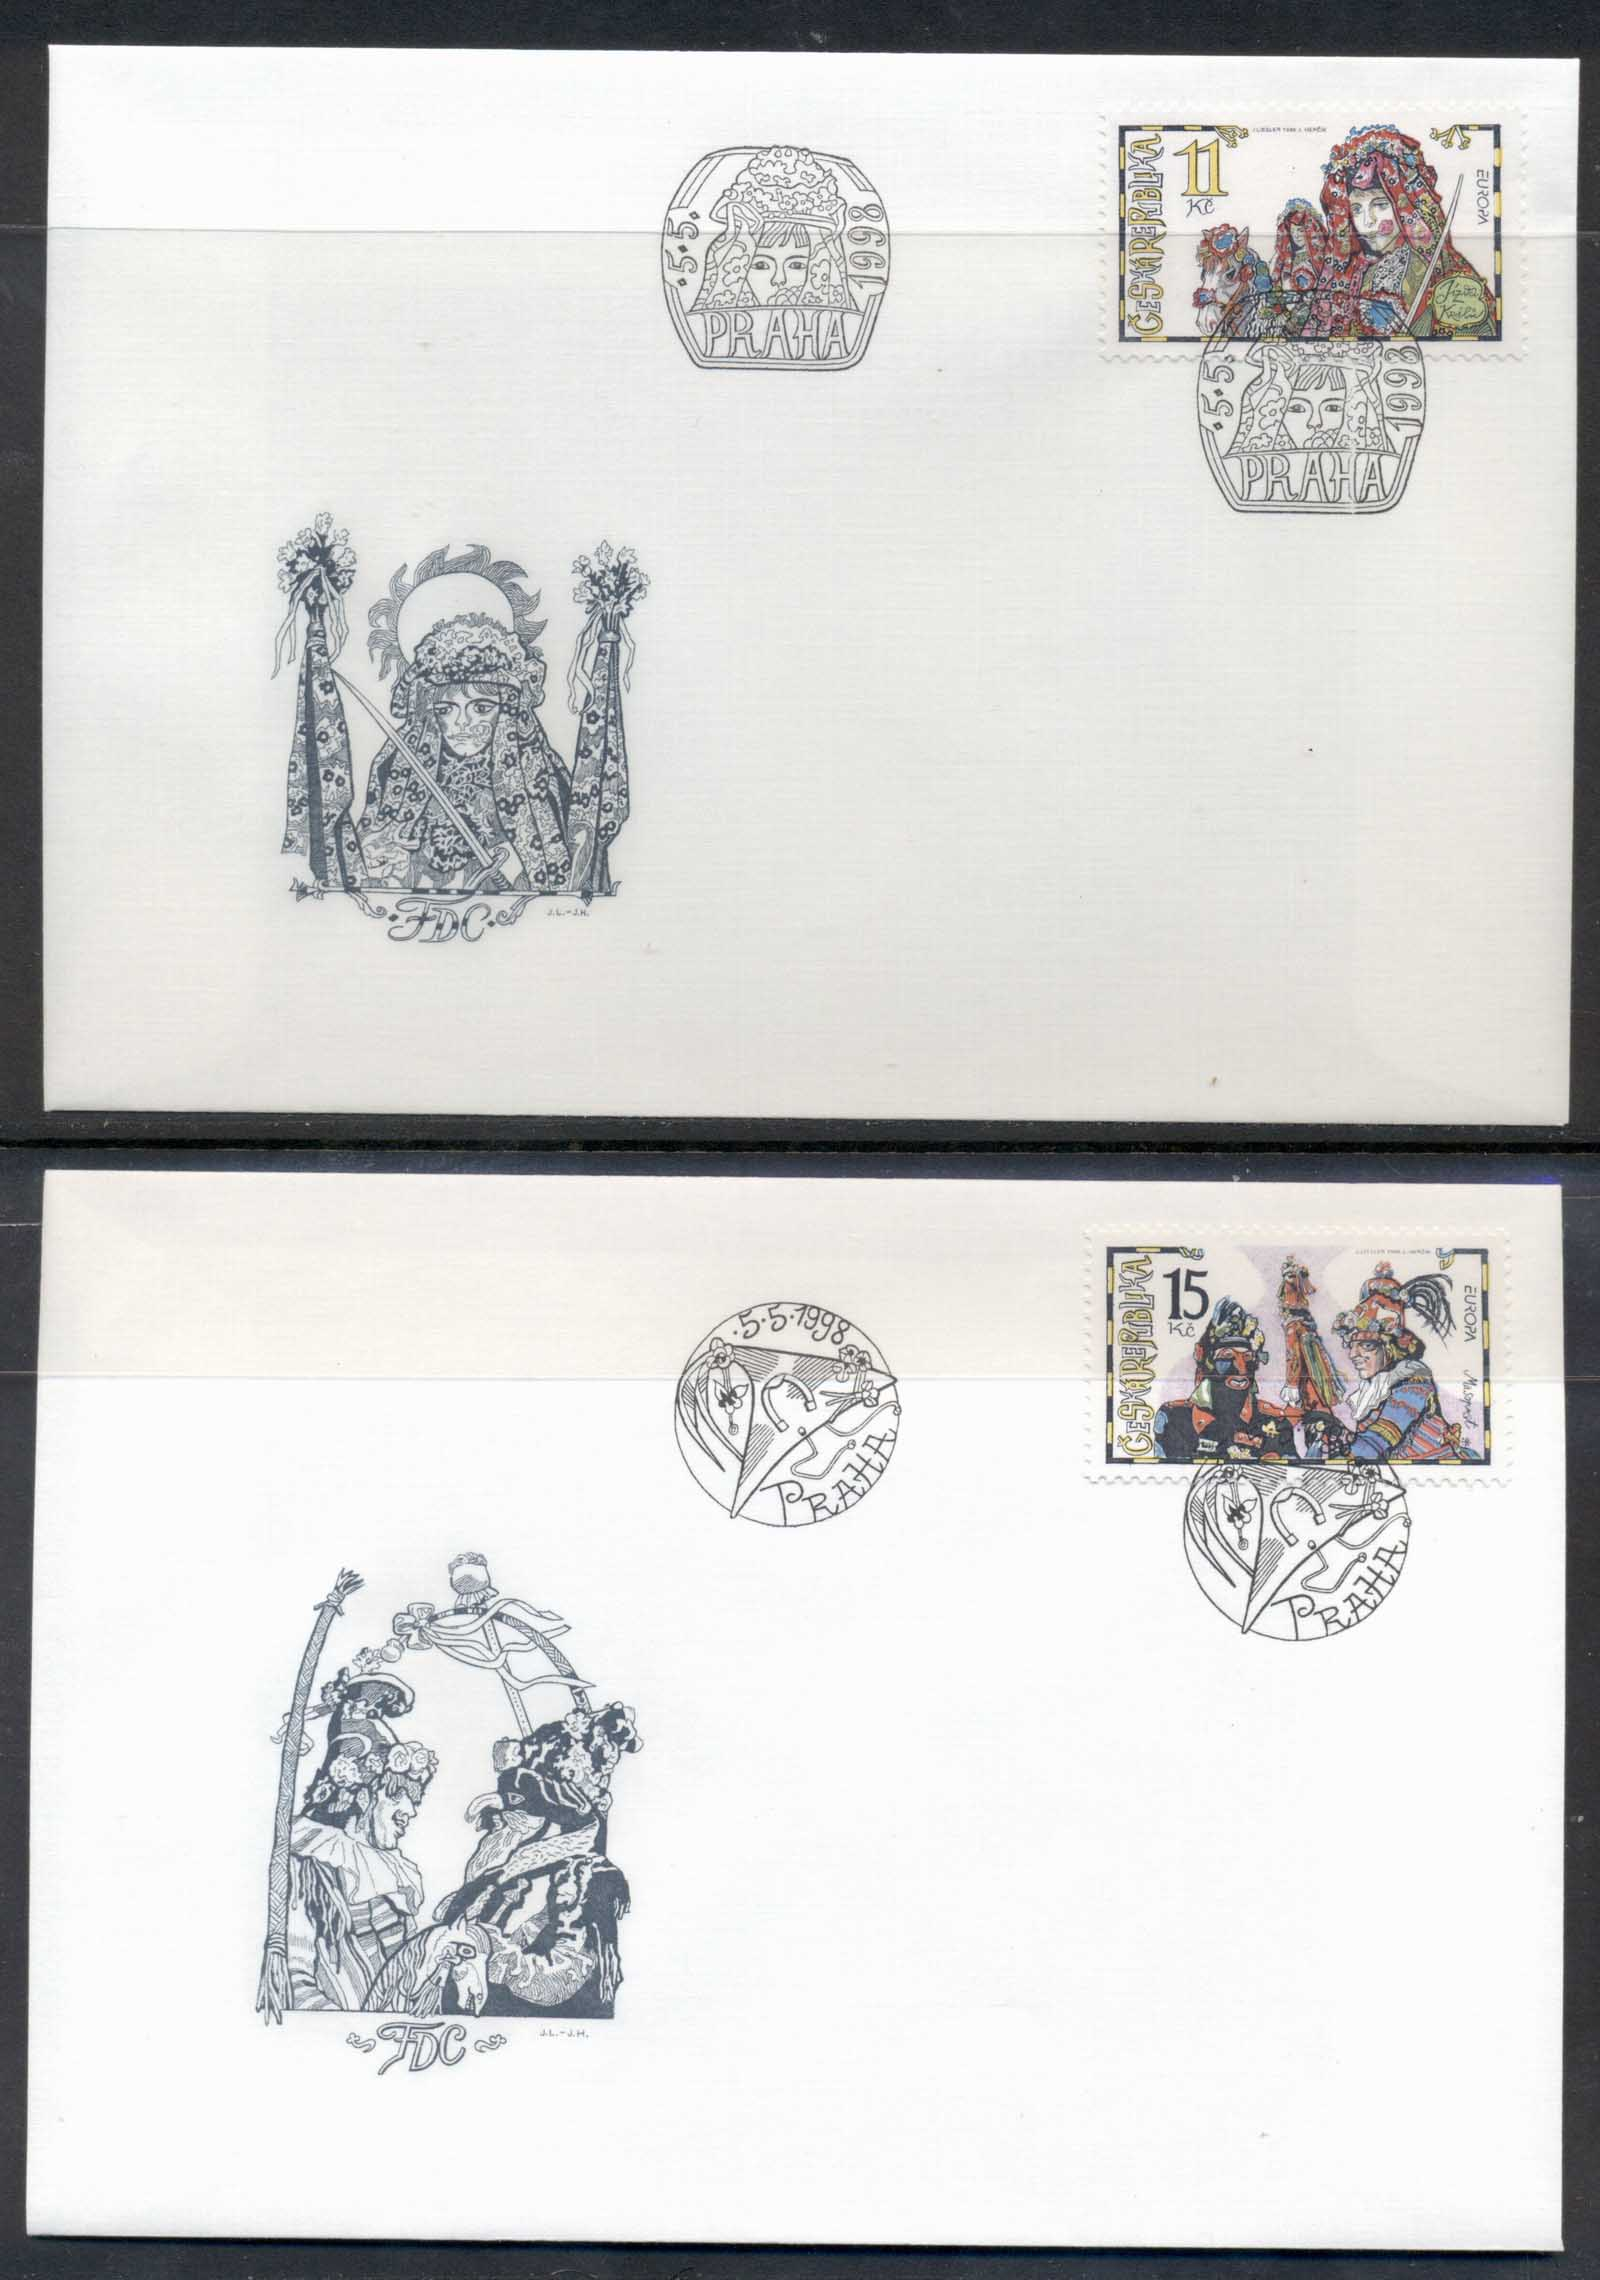 Czech Republic 1998 Europa Holidays & Festivals 2x FDC